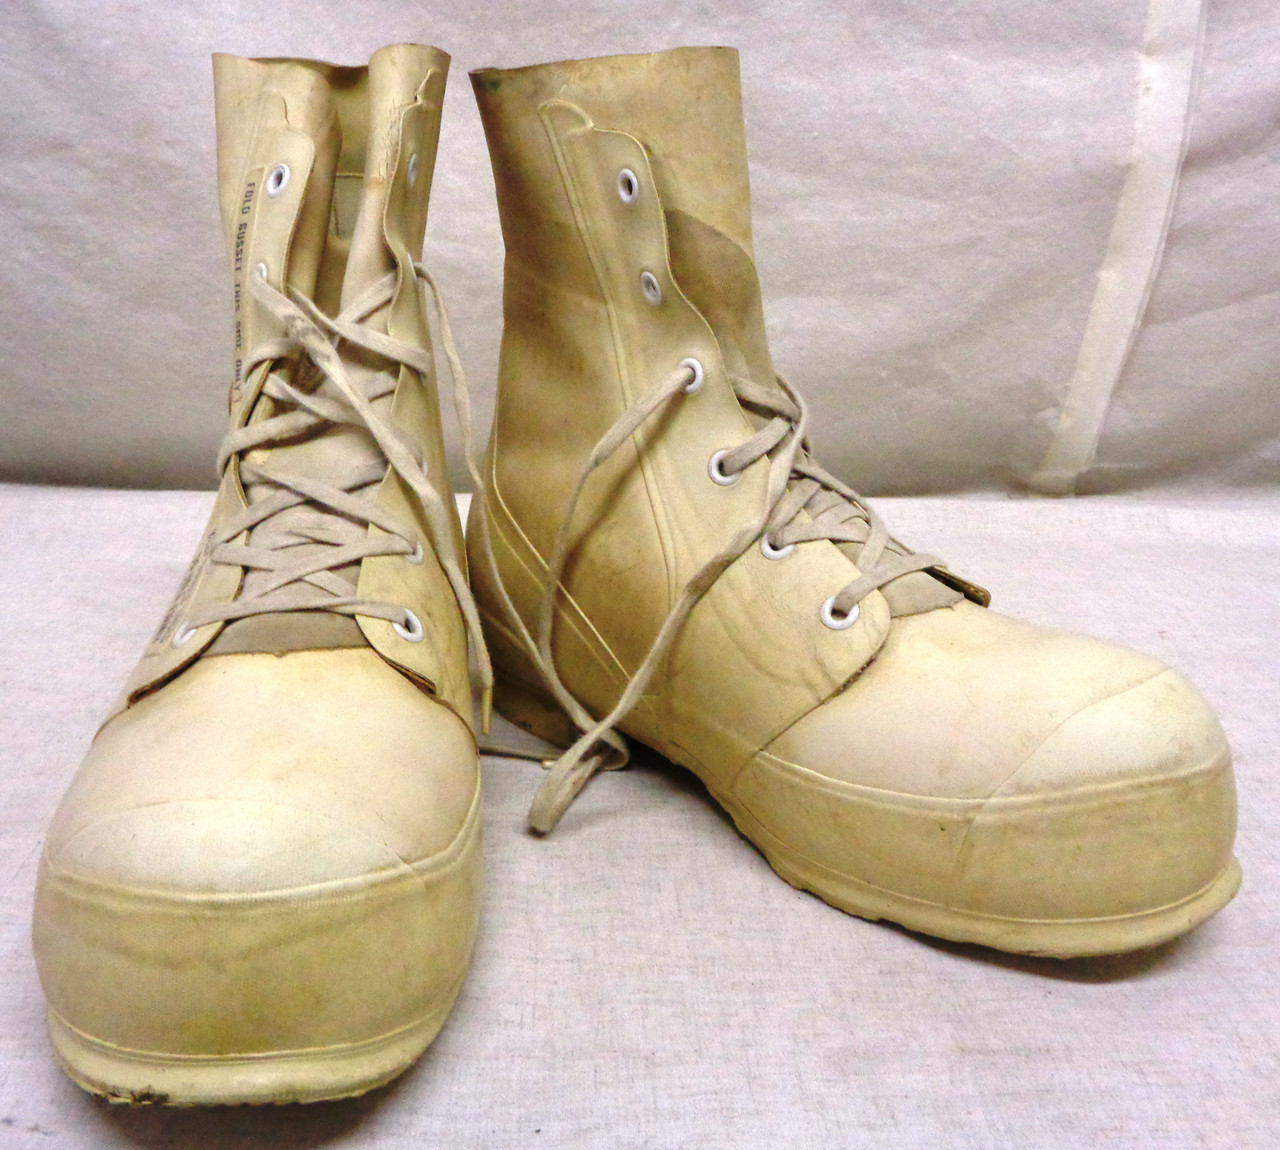 U.S. Extreme Cold Weather Boots type II